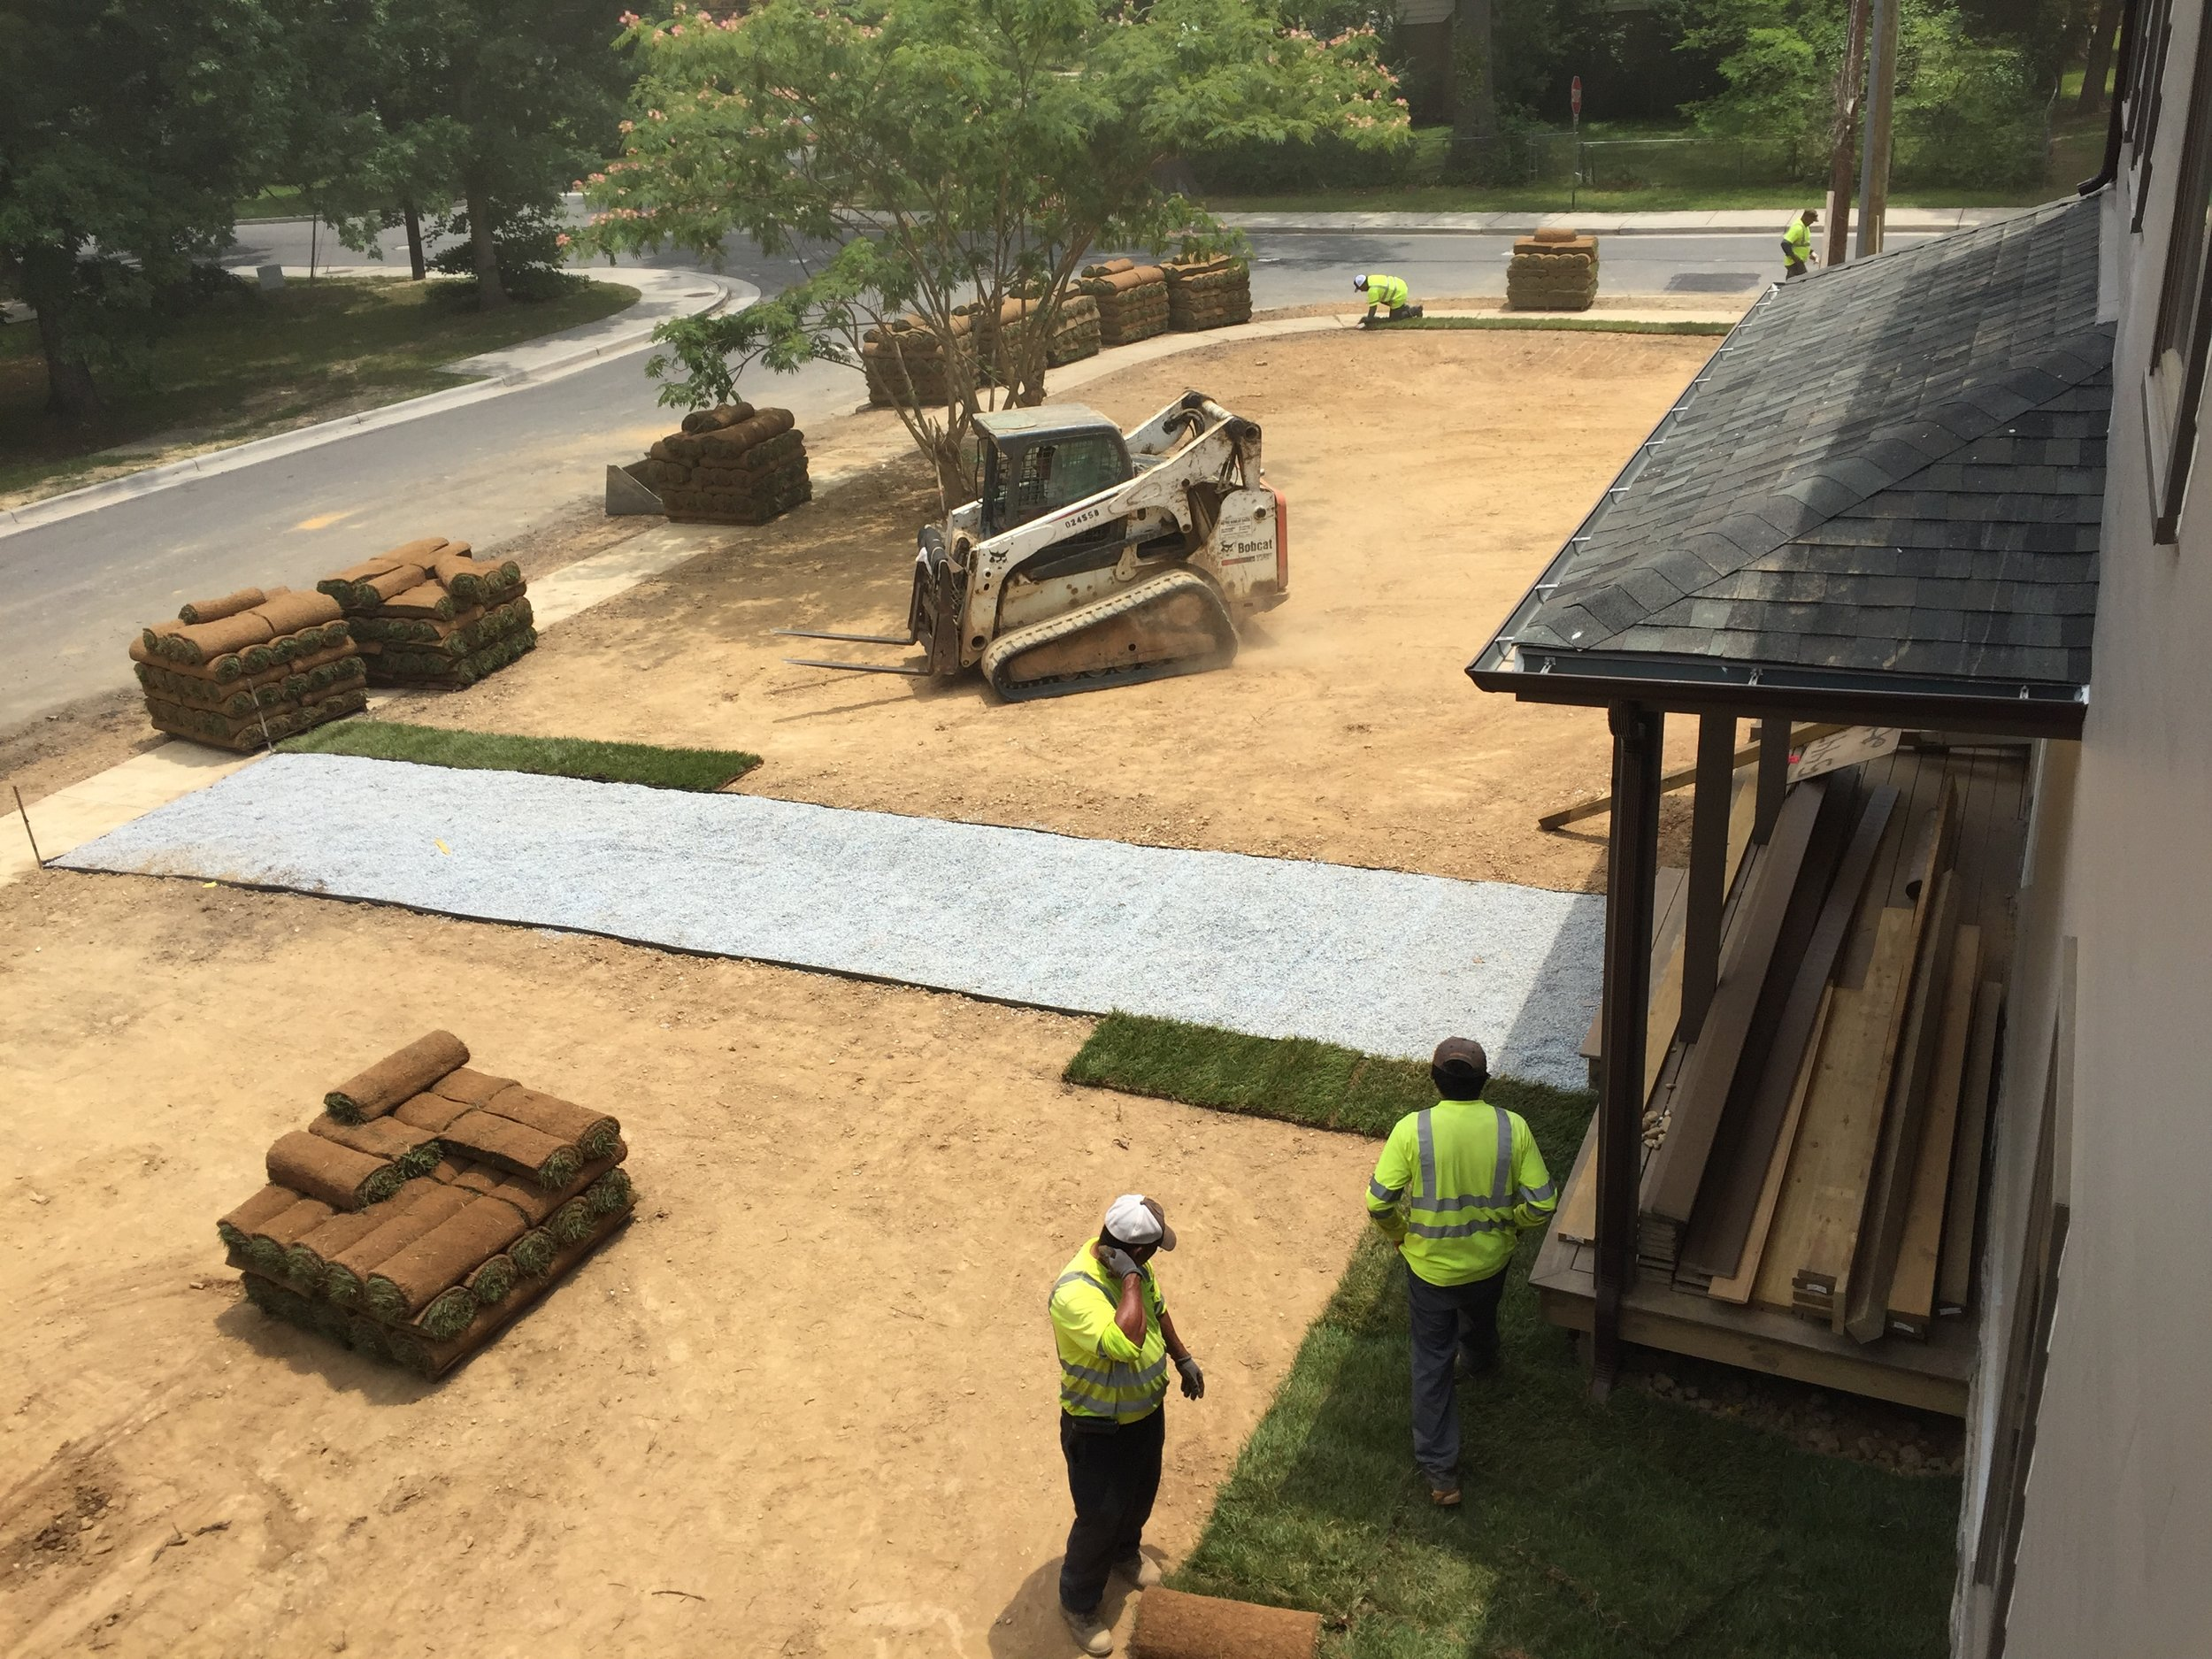 Sod starting to get placed after the morning crew cleaned the site. Notice how smooth the dirt looks.